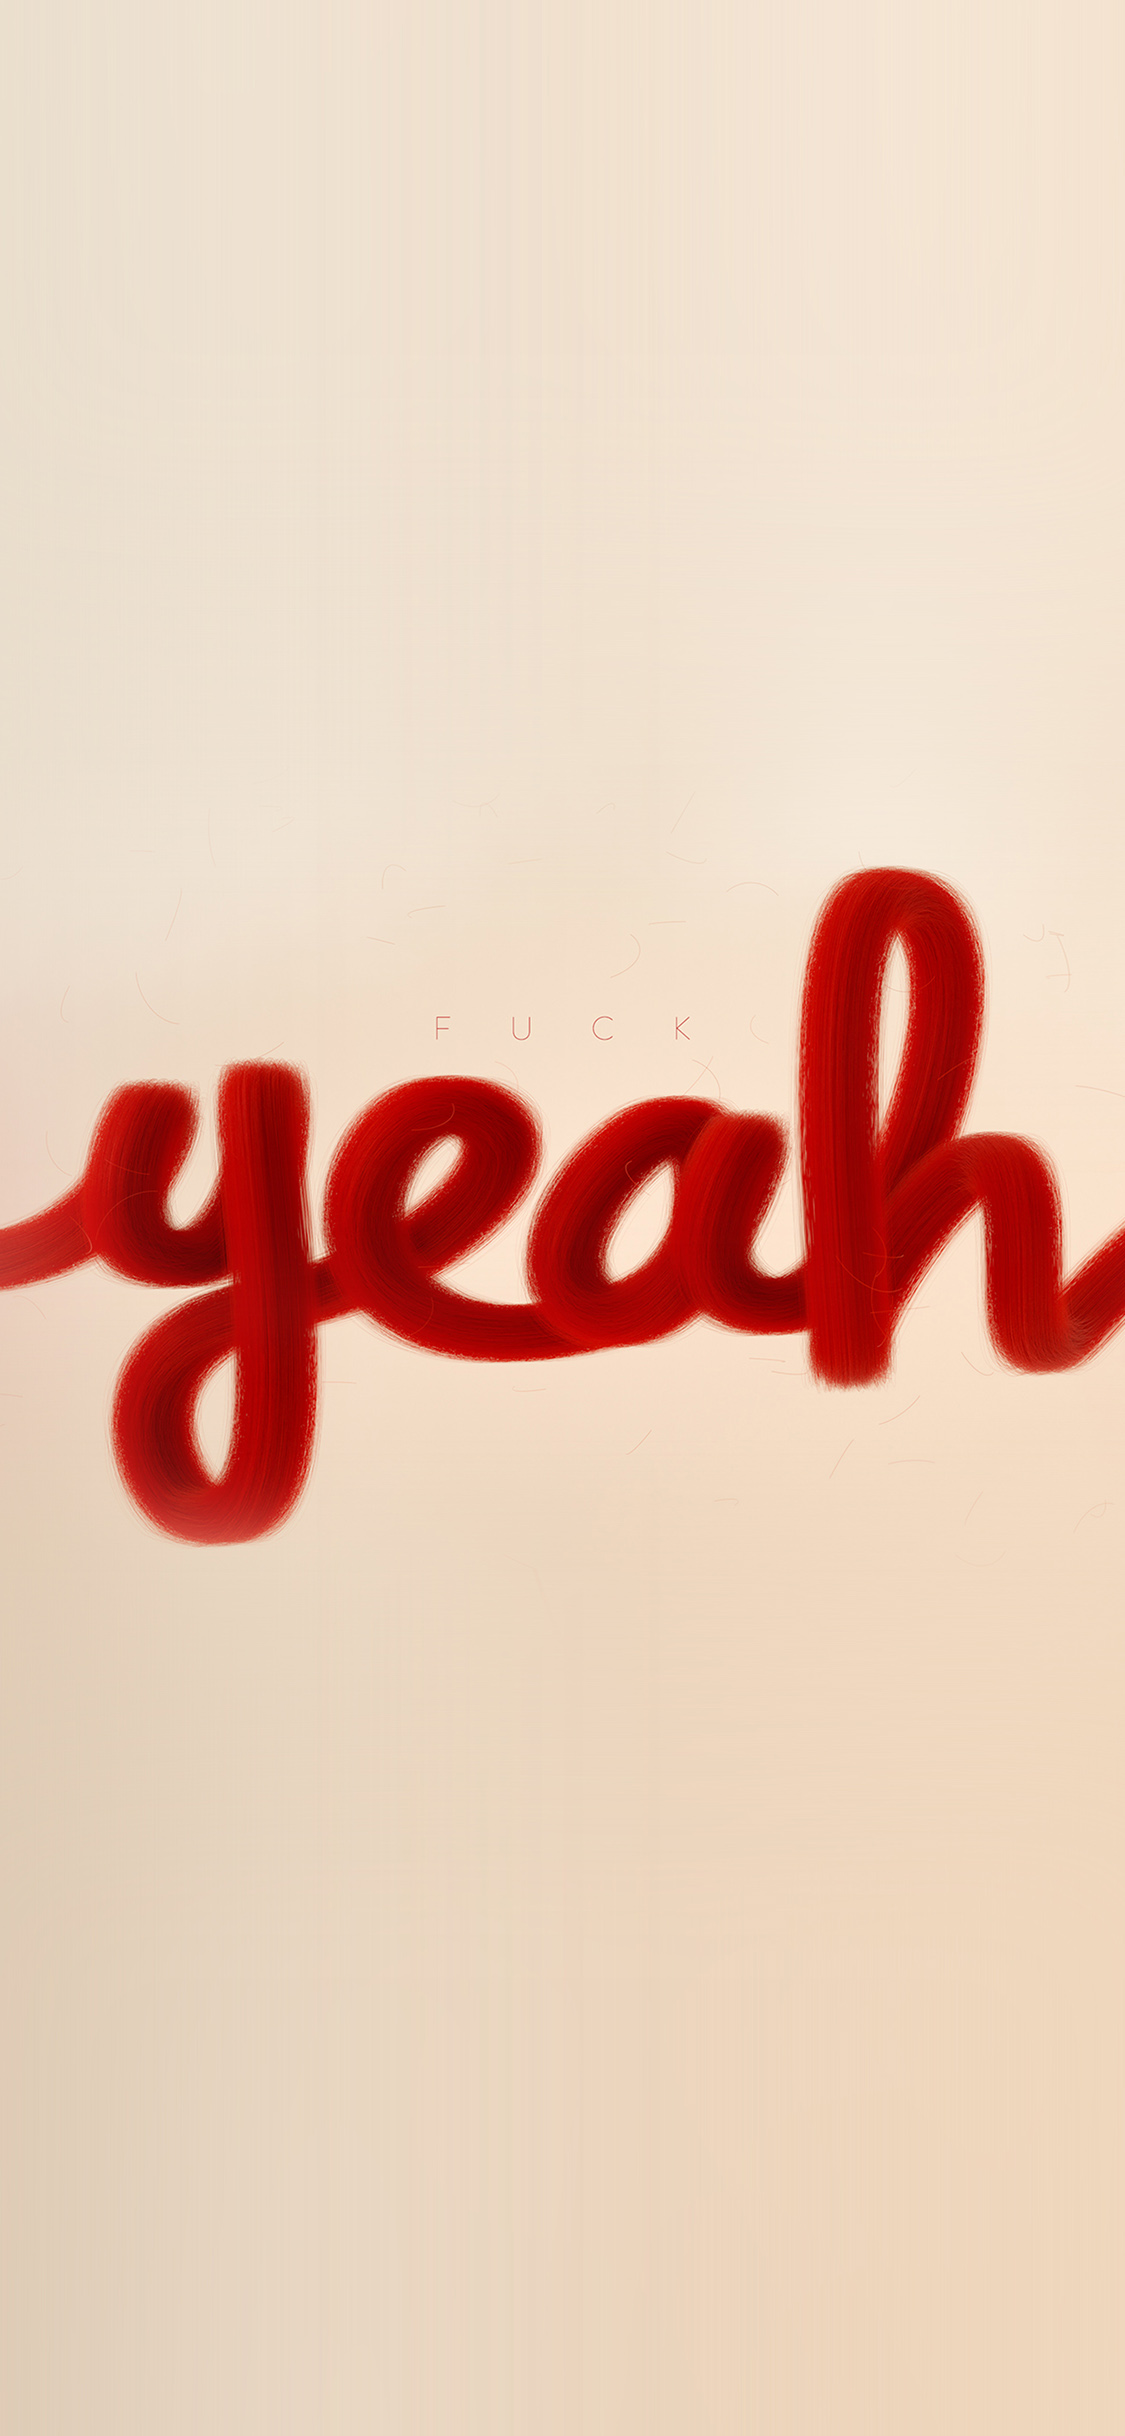 iPhoneXpapers.com-Apple-iPhone-wallpaper-az84-fuck-yeah-red-calligraphy-illustration-art